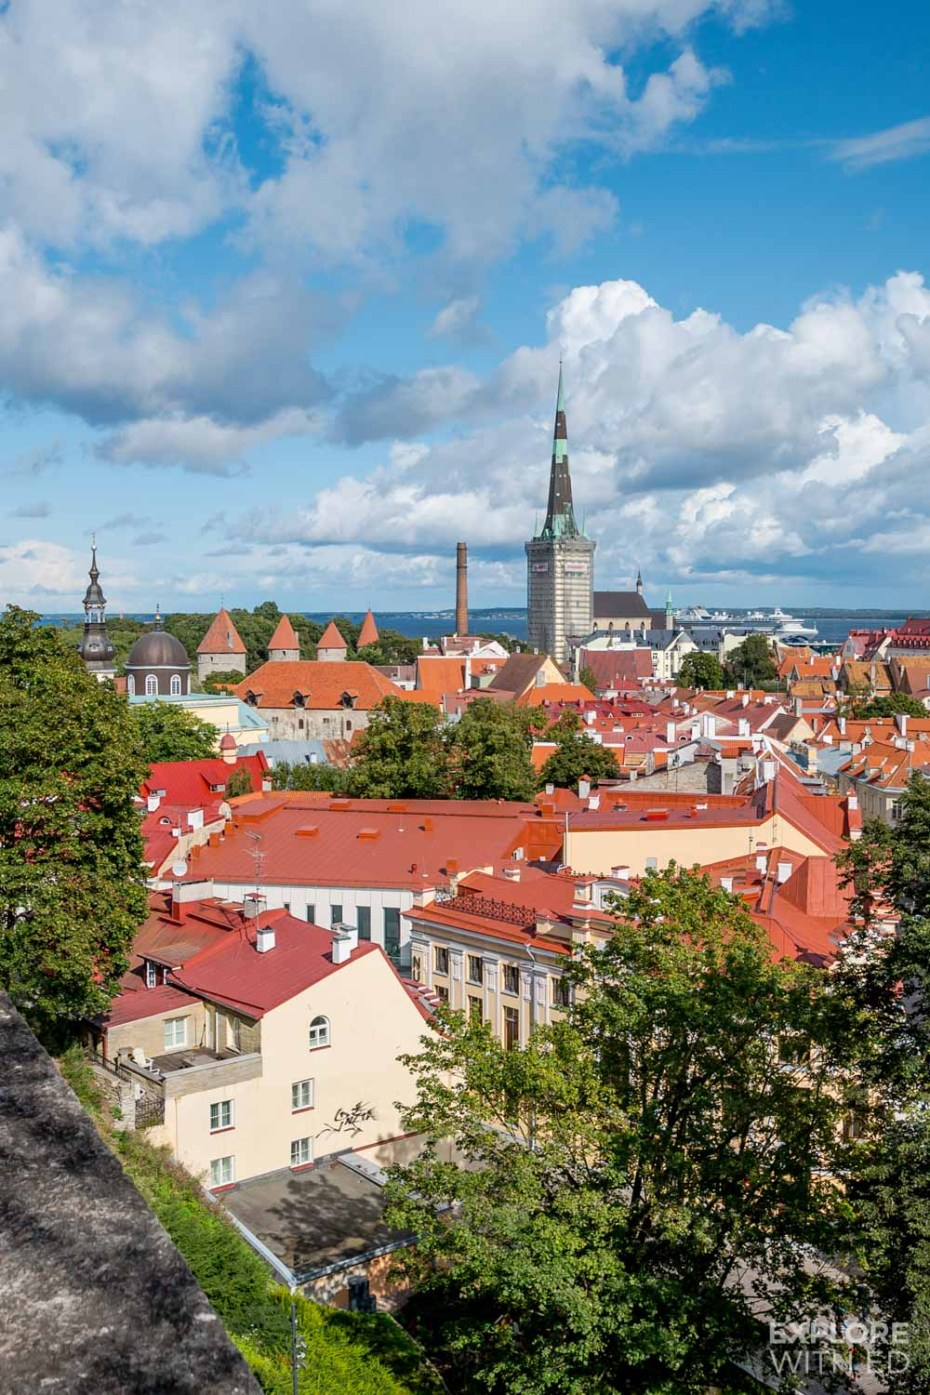 The Kohtuotsa viewing platform is one of the most magical places in Tallinn for photography